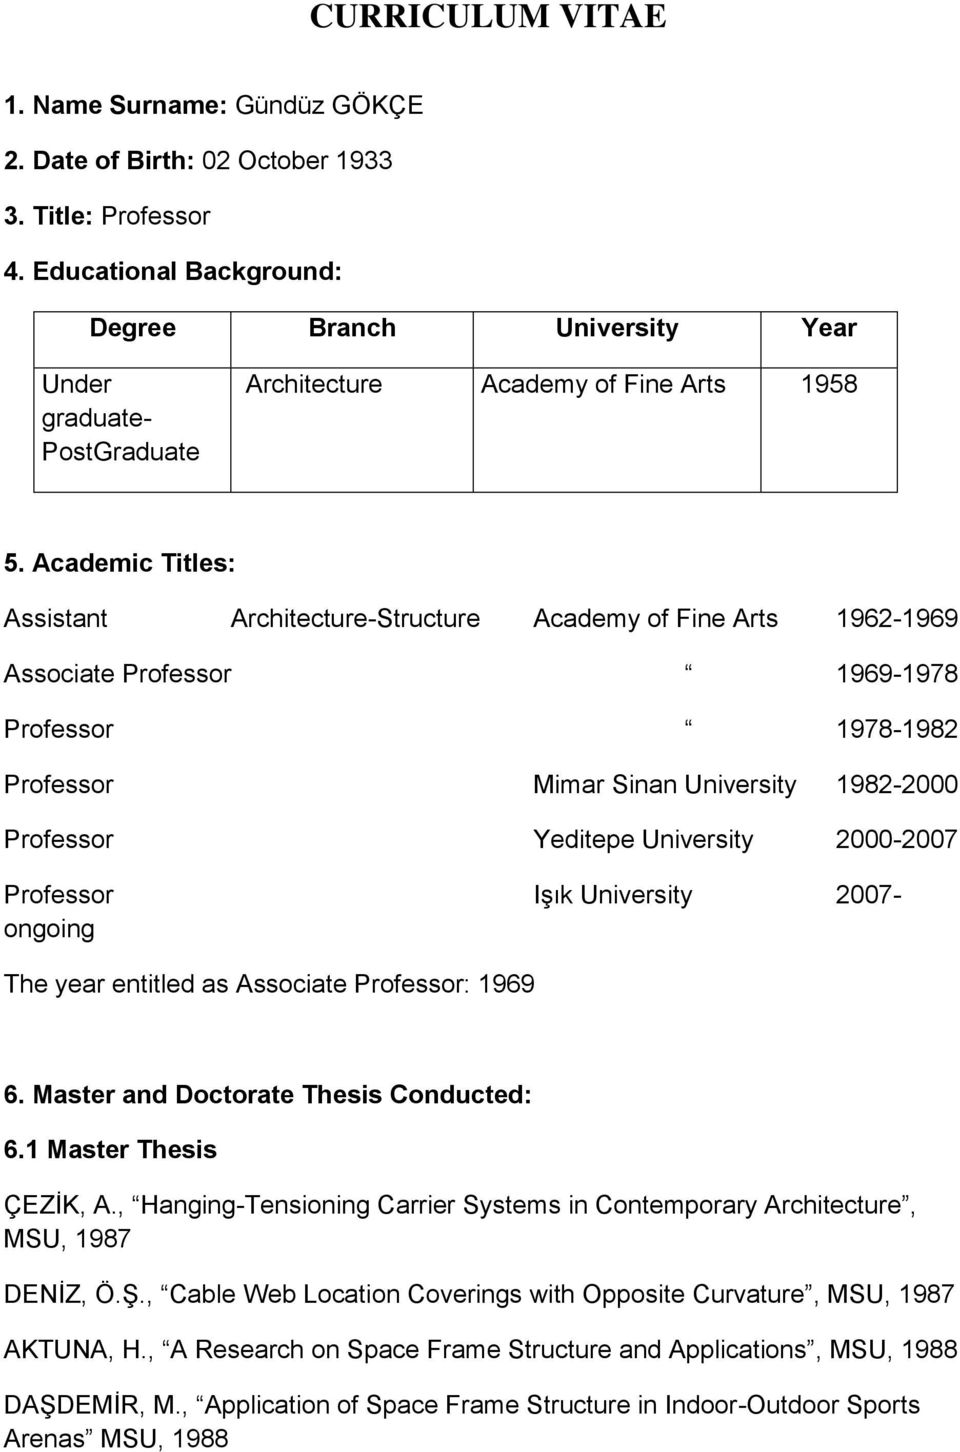 Academic Titles: Assistant Architecture-Structure Academy of Fine Arts 1962-1969 Associate Professor 1969-1978 Professor 1978-1982 Professor Mimar Sinan University 1982-2000 Professor Yeditepe